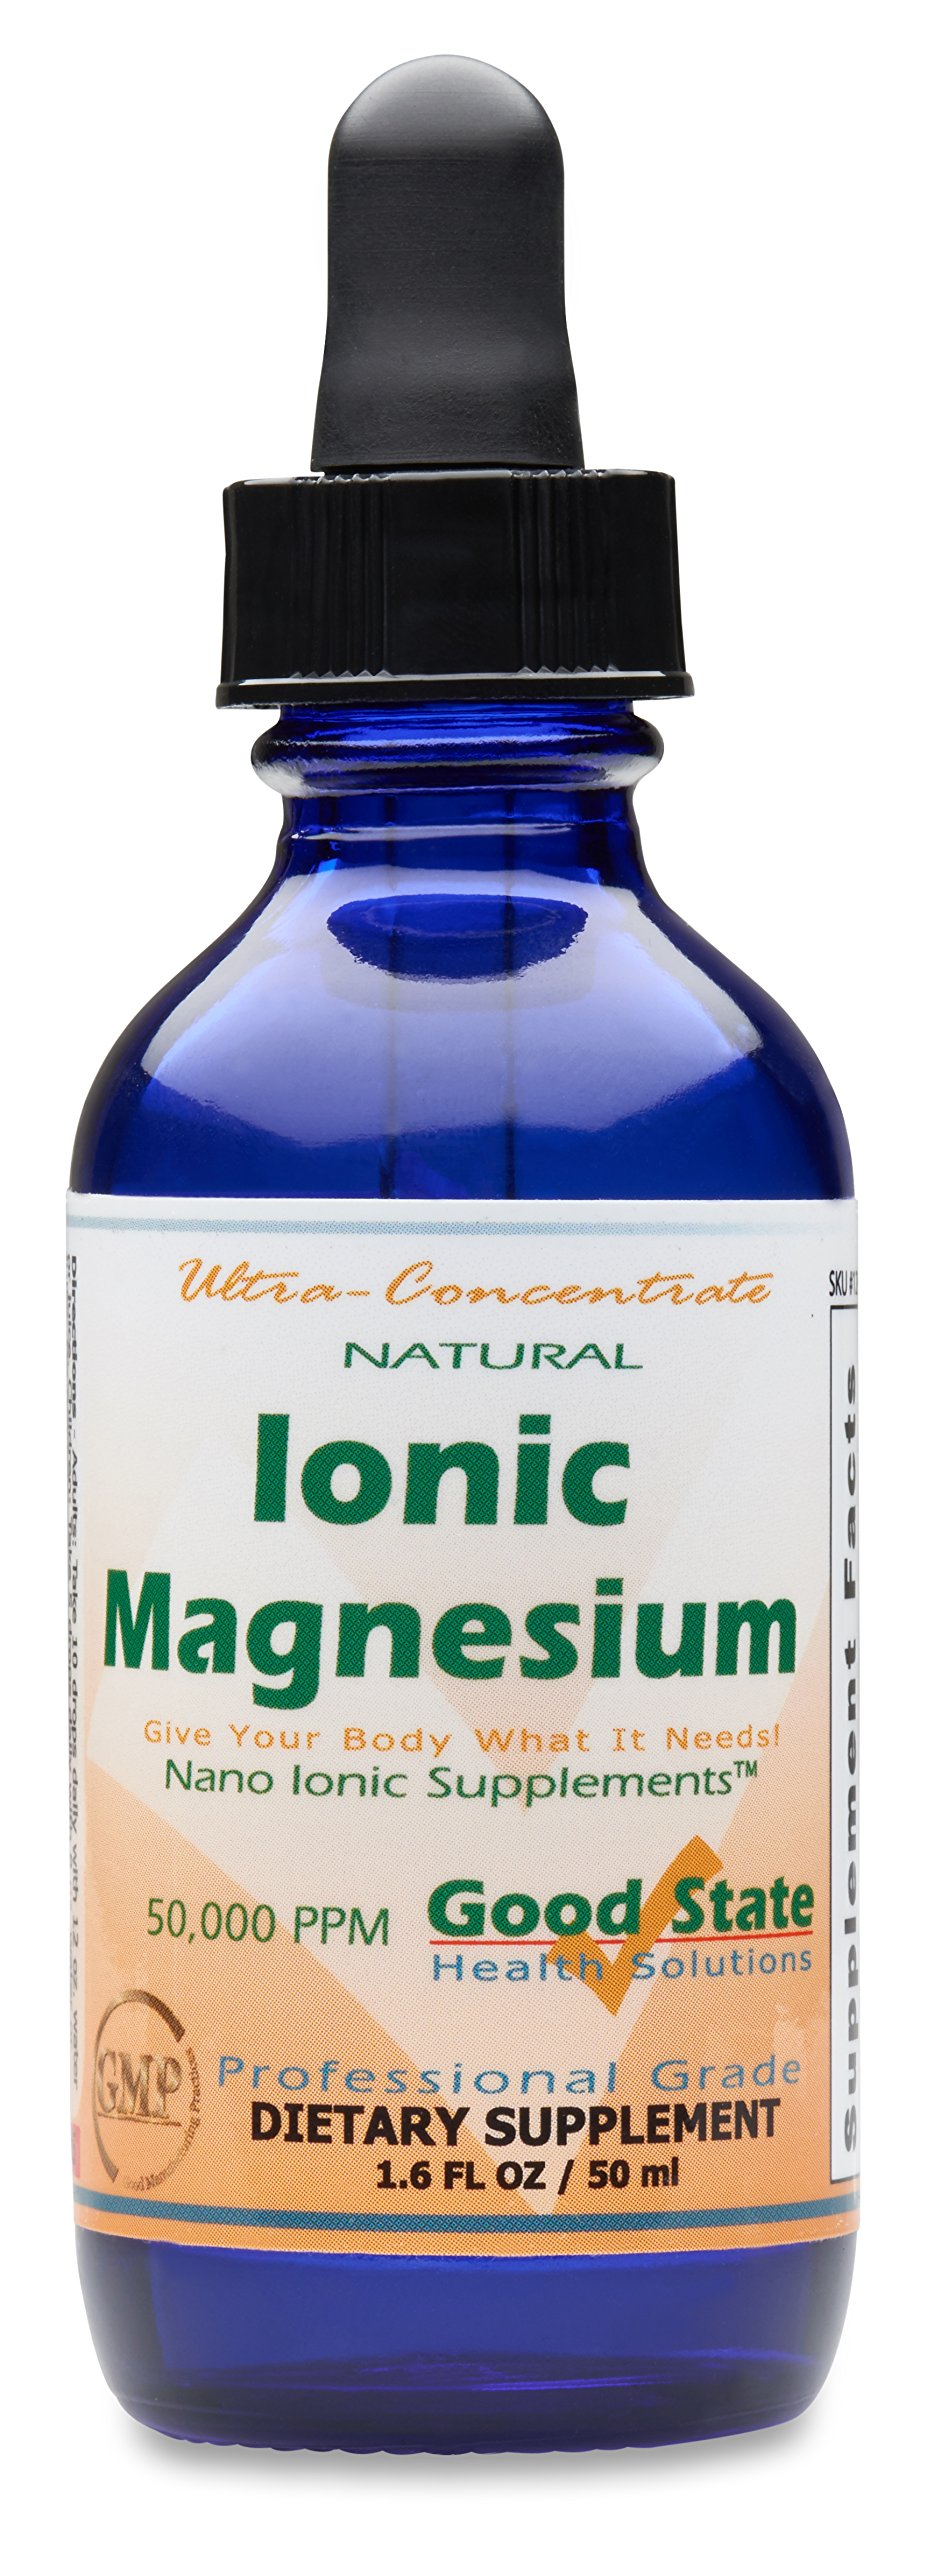 (Glass Bottle) Good State Liquid Ionic Magnesium Ultra Concentrate (10 drops equals 50 mg - 100 servings per bottle)